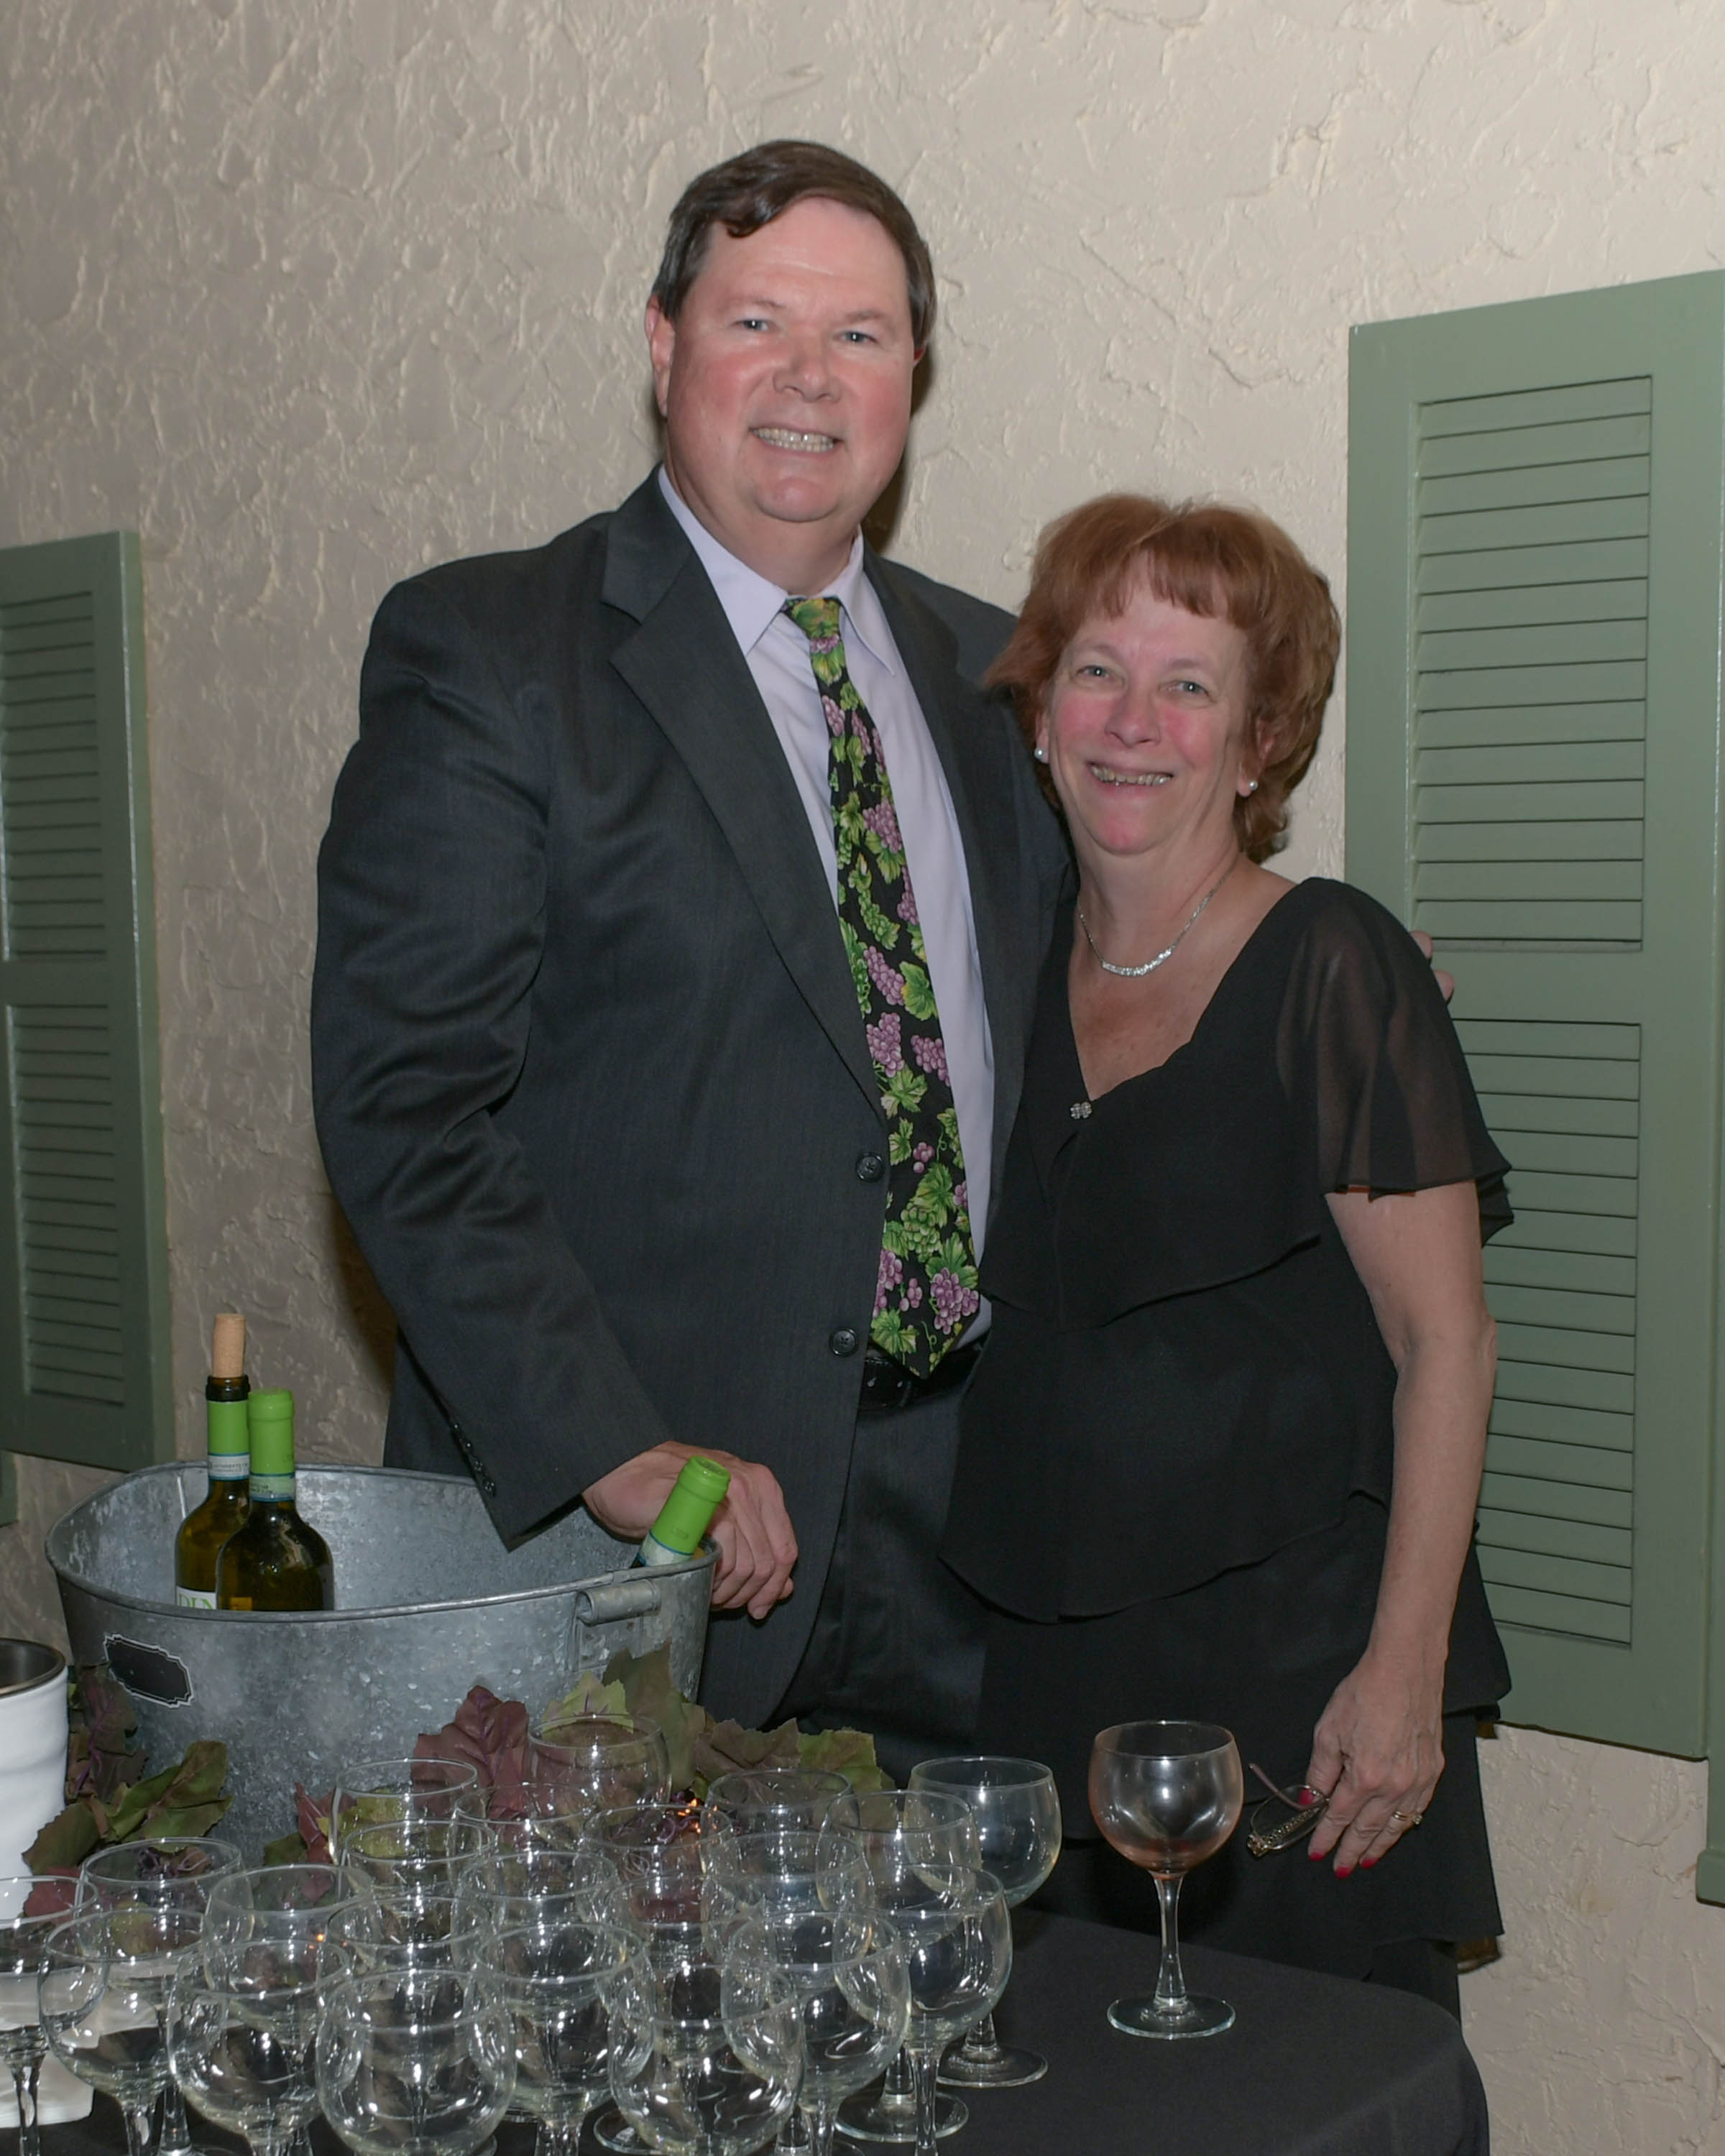 Vin Le Soir to benefit AIM Services, Inc. Brian Gwynn and wife at AIM wine tasting from Specialty Wines and More